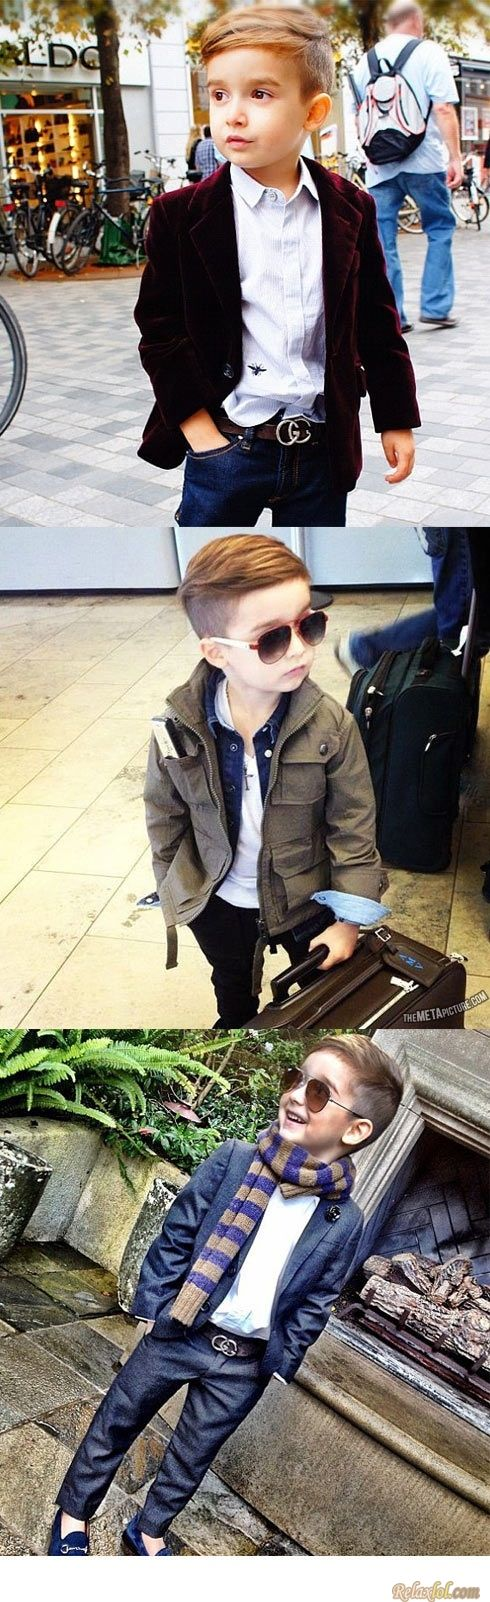 Even little men need to be fashionable #fashion #menswear #cute #kids #style #stylish #guys #men #learnfromthemaster